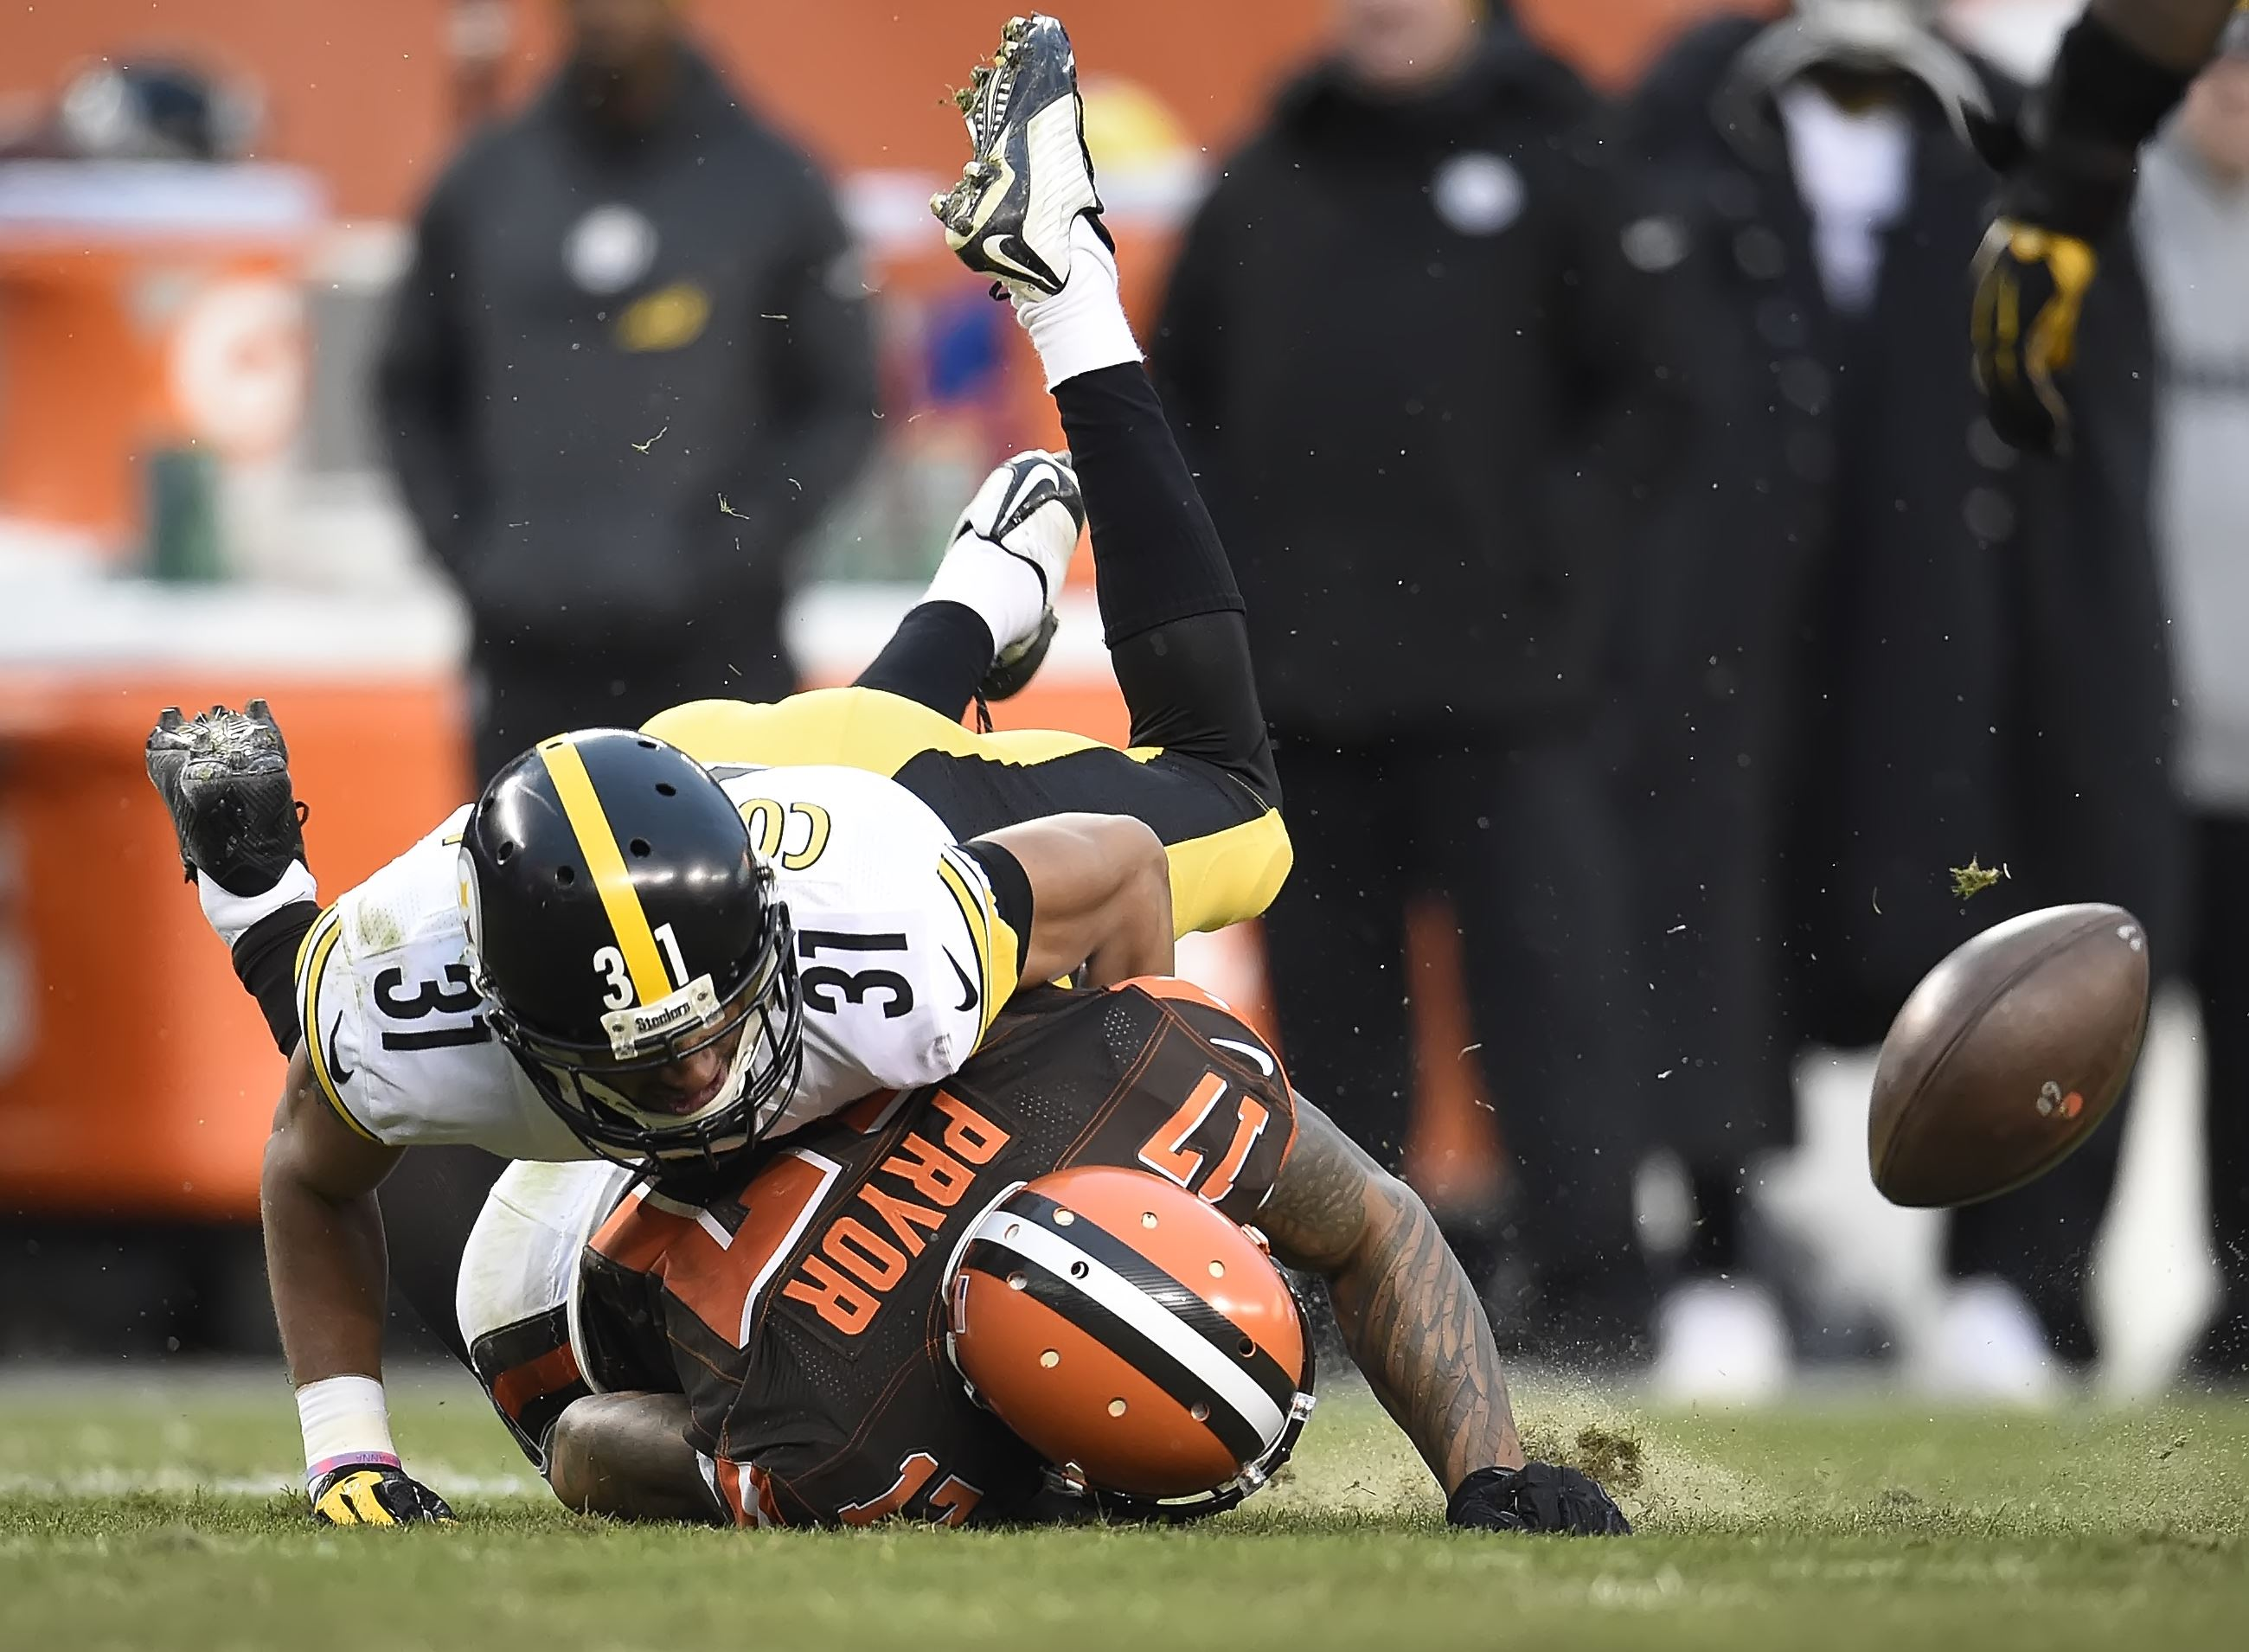 Steelers sign cornerback Ross Cockrell to one-year contract extension